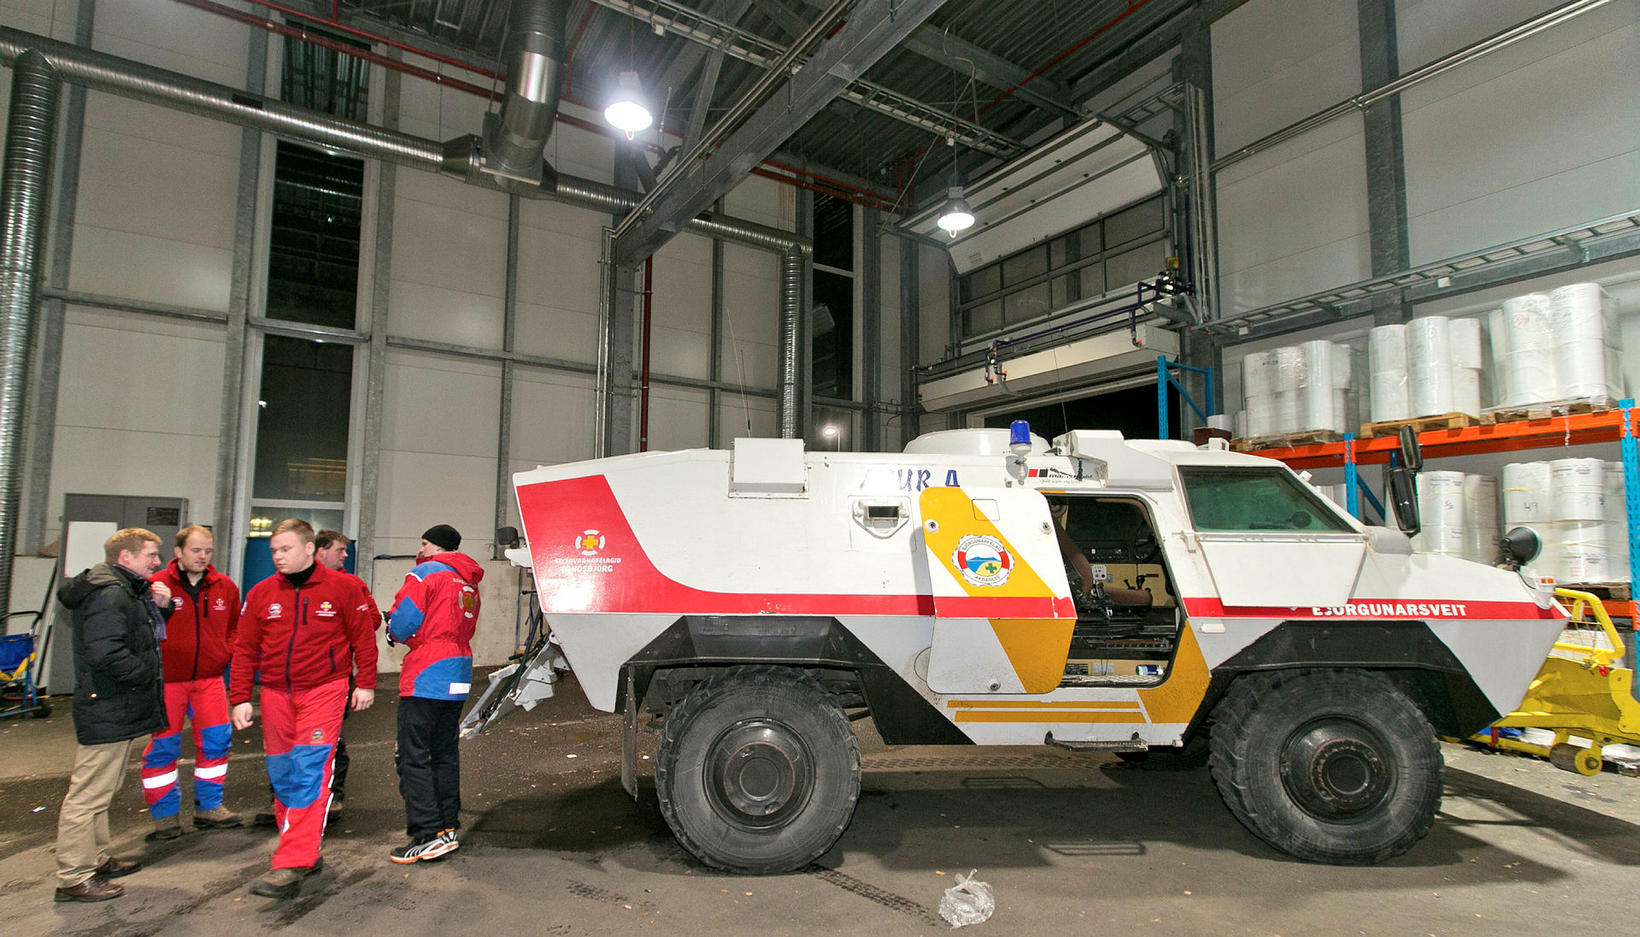 An armored vehicle was taken into use in Kjalarnes.